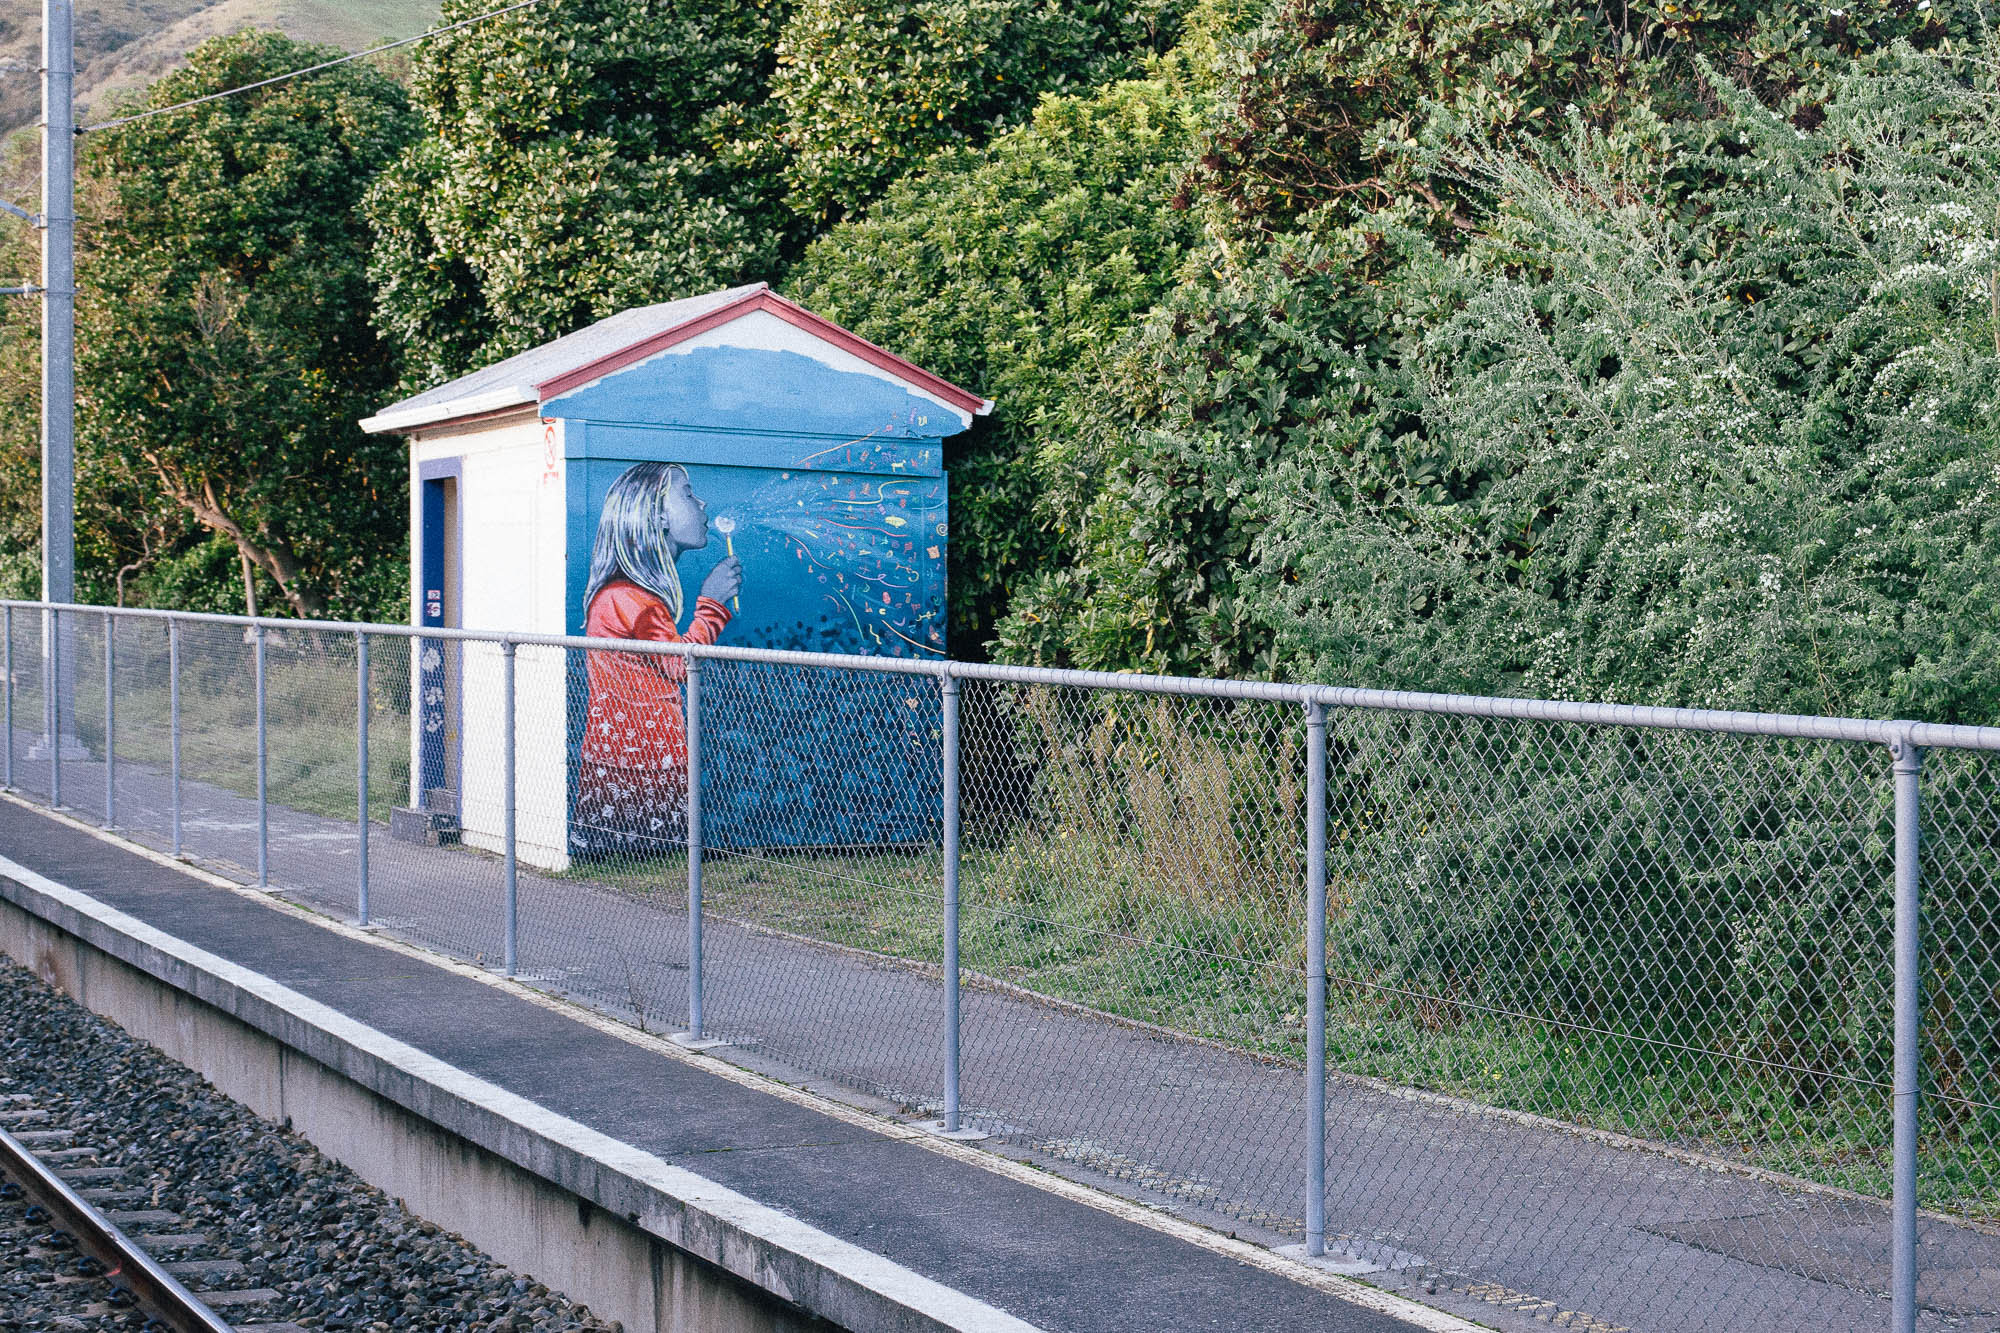 a moment unravelling time: a mural of a girl blowing a dandelion clock on the wall of a building beside a railway line. (c) leonie wise